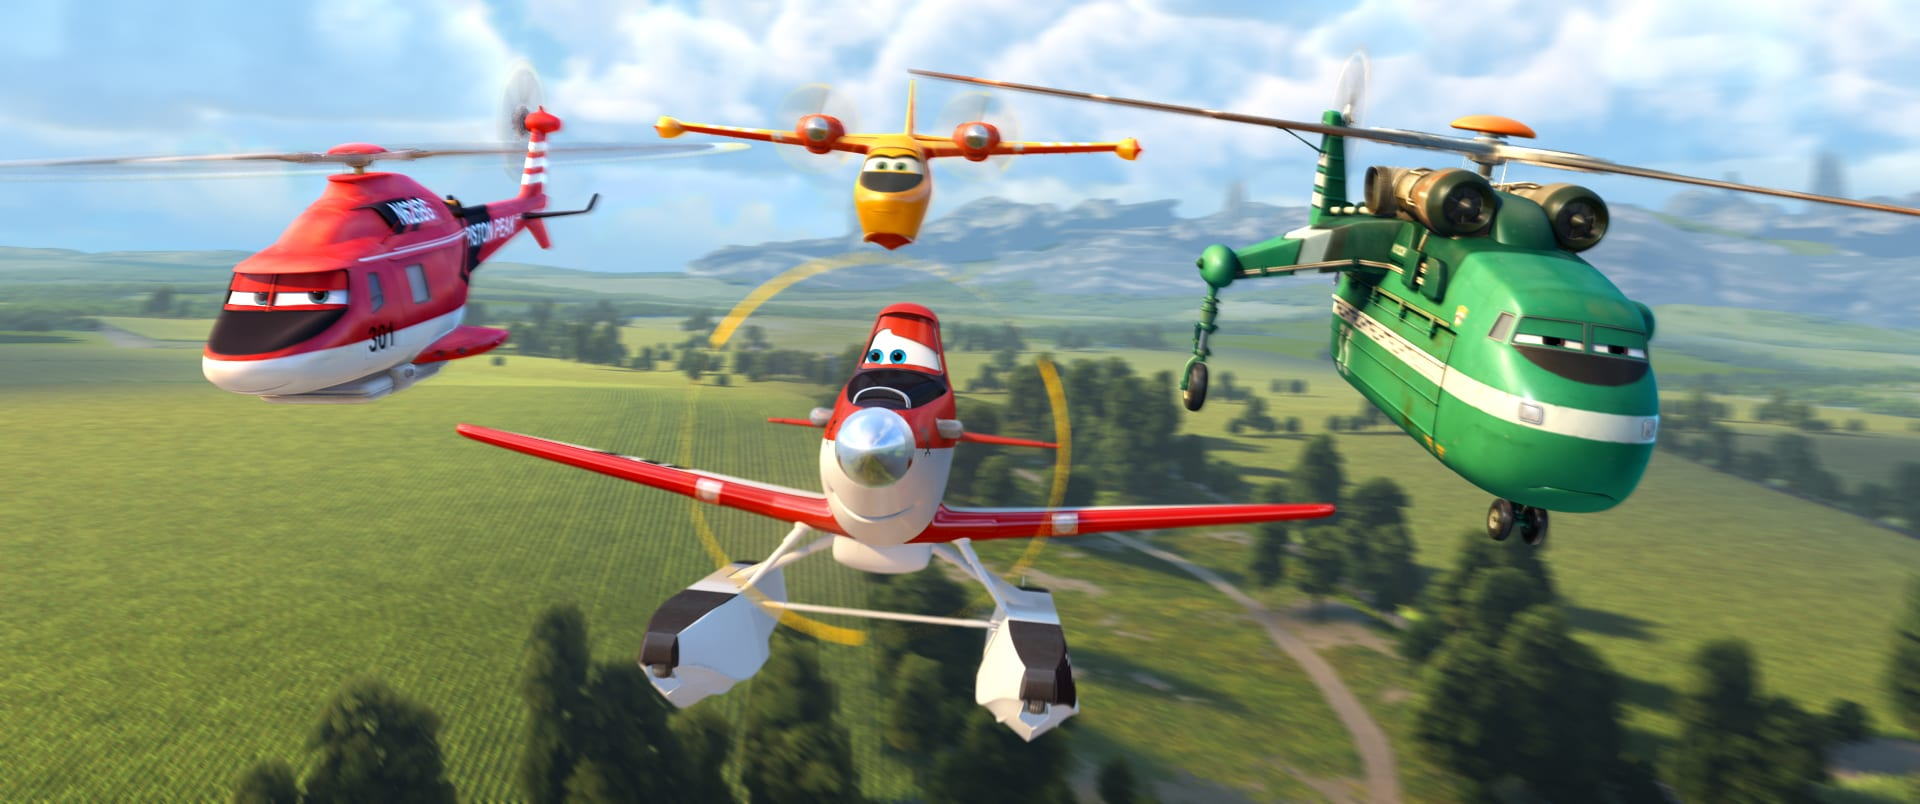 """Dusty, Blade Runner, Lil Dipper and Windlifter in the movie """"Planes: Fire & Rescue"""""""